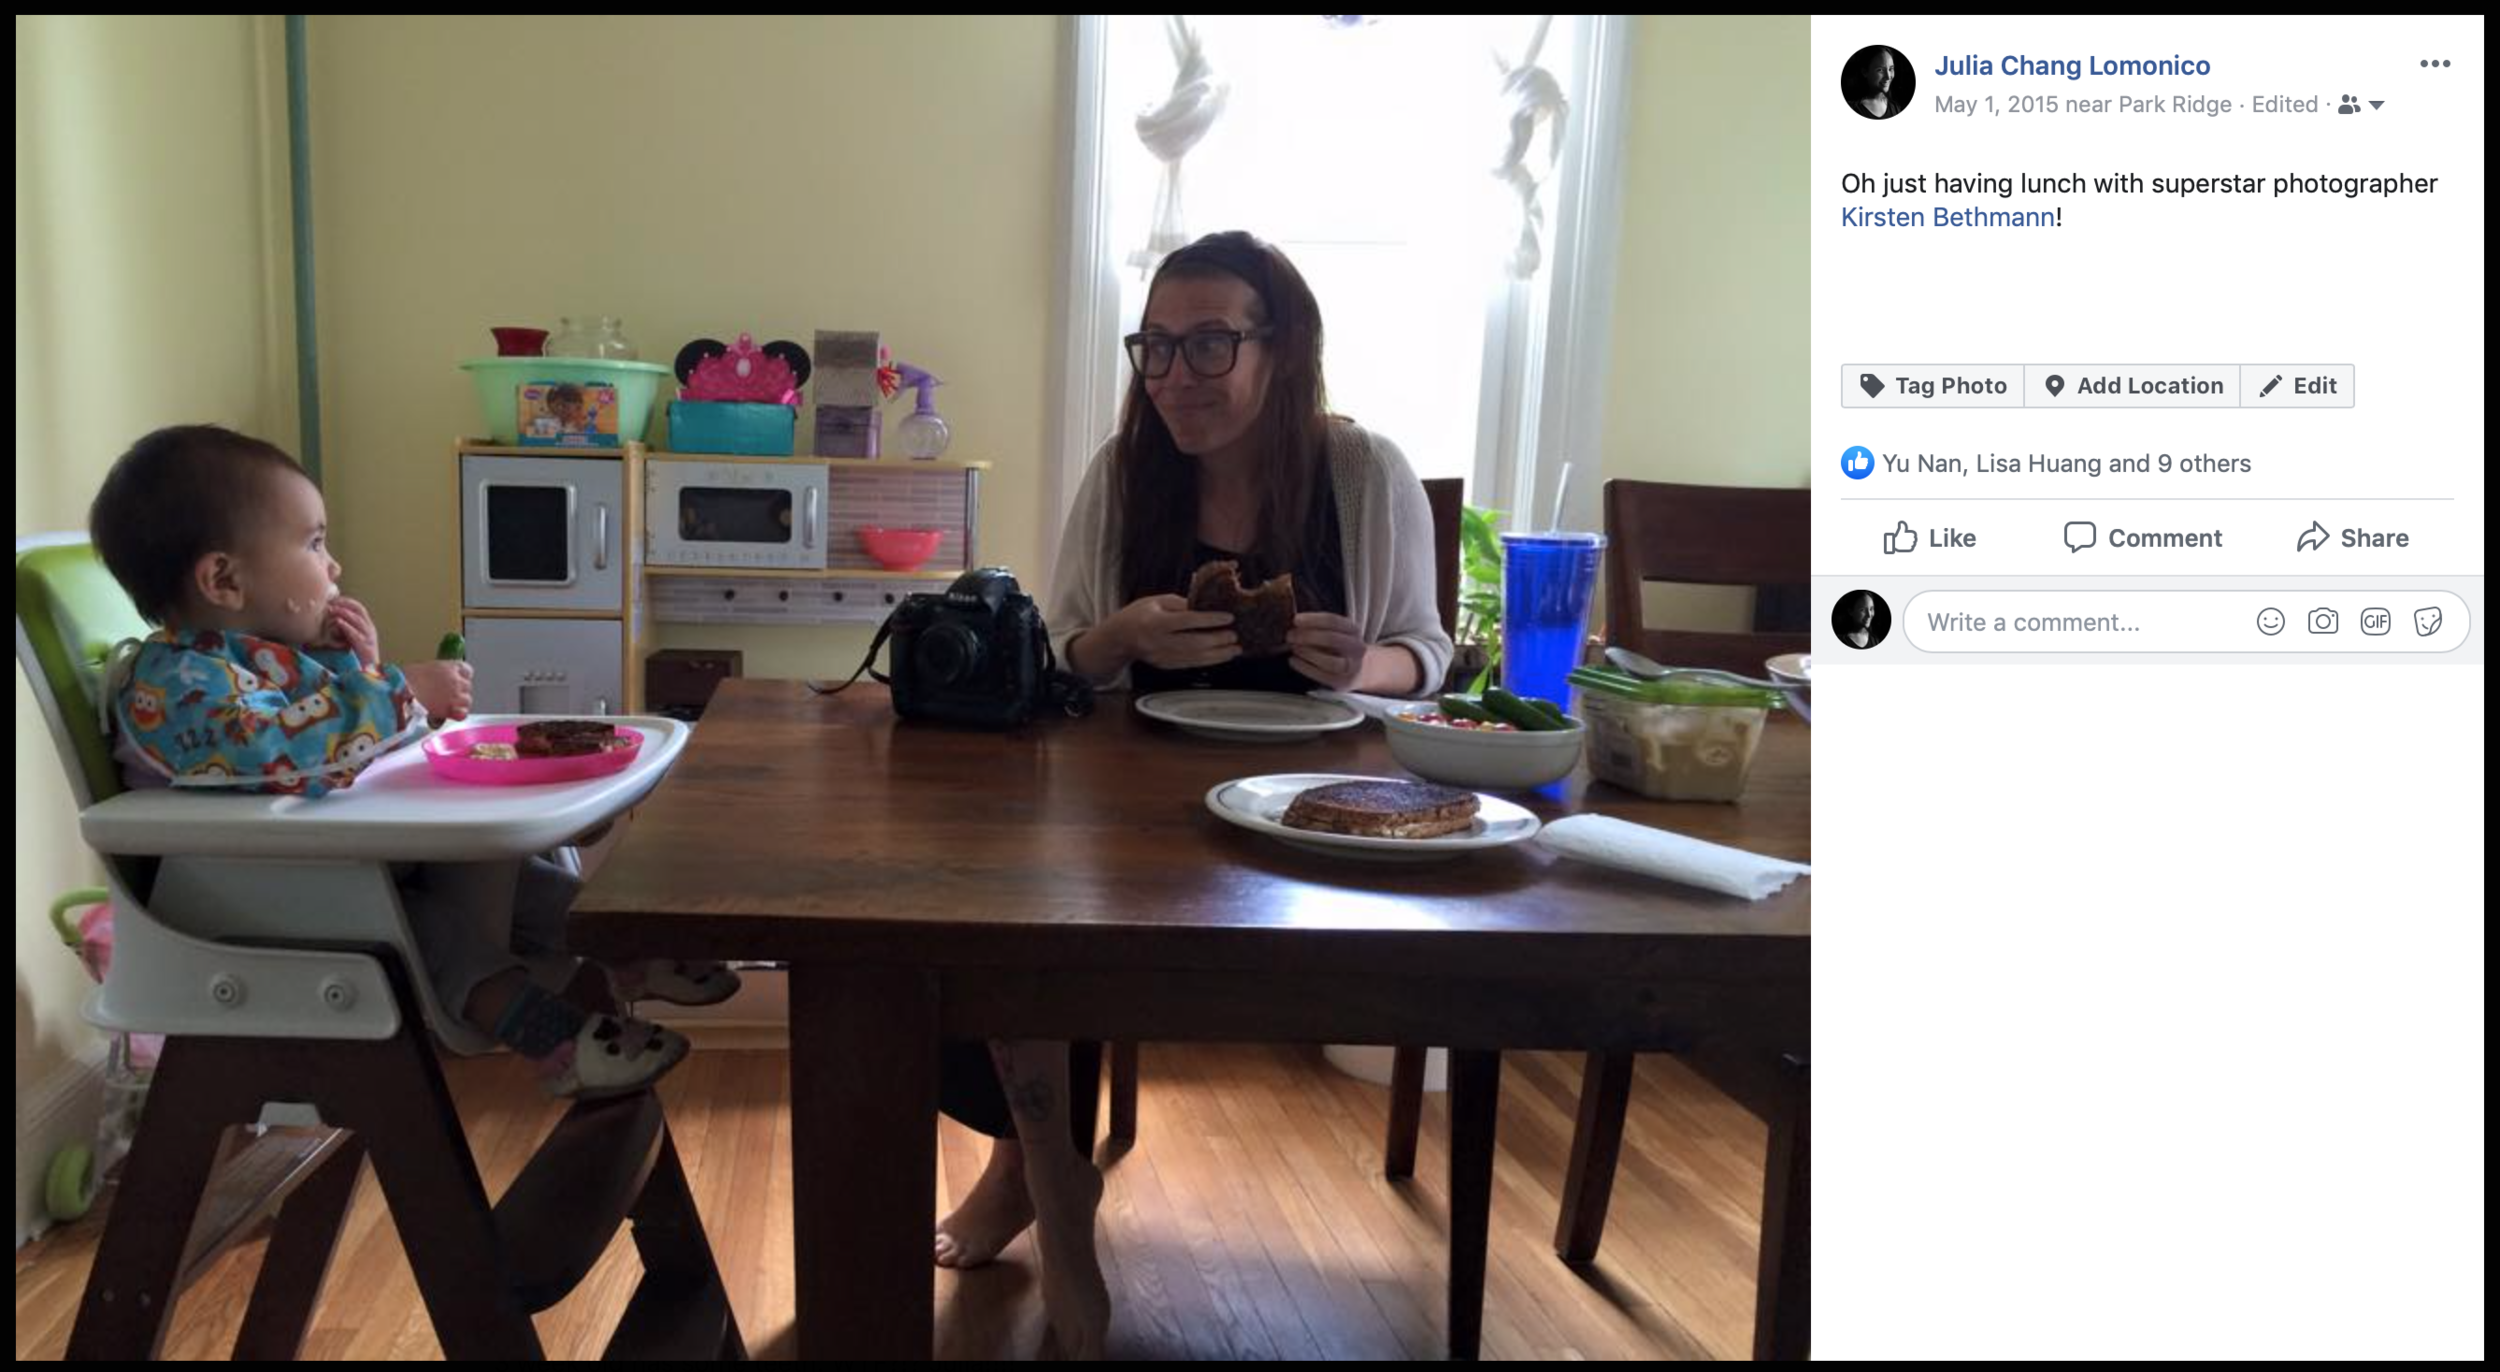 Woman with glasses eats sandwich at table while baby in high chair eats off a pink plate